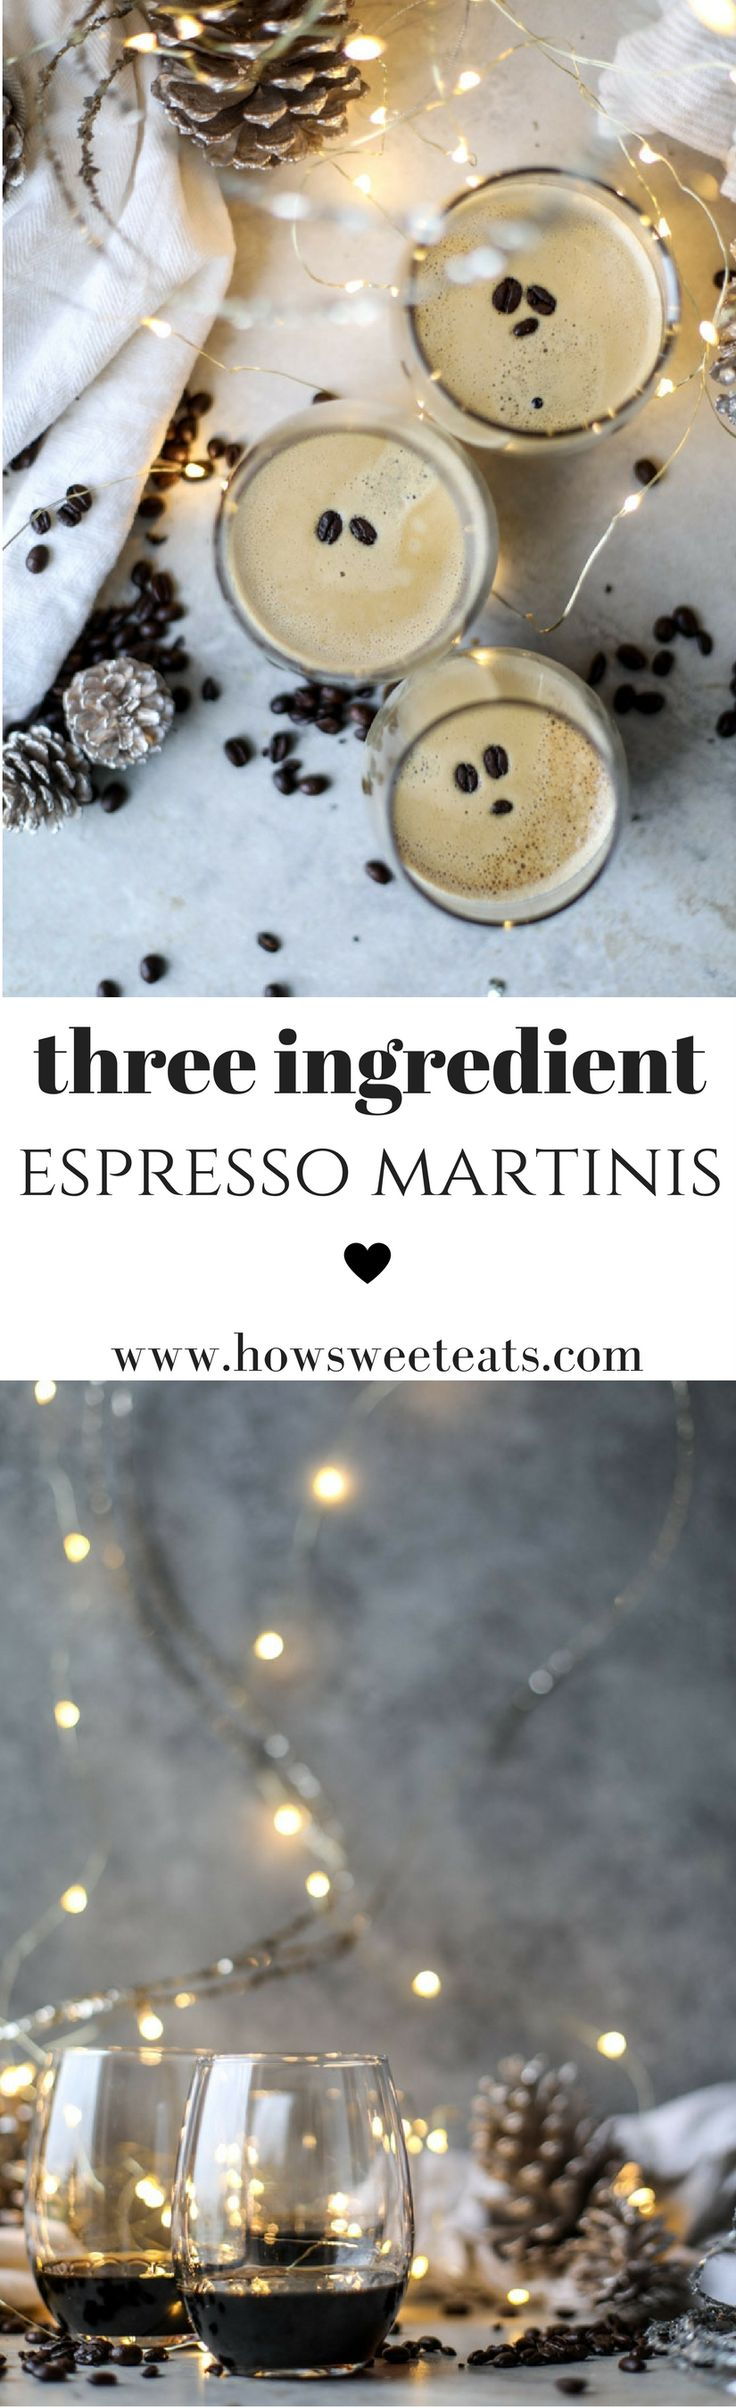 3 ingredients Espresso Martinis! Warming to the soul. I howsweeteats.com by @howsweeteats